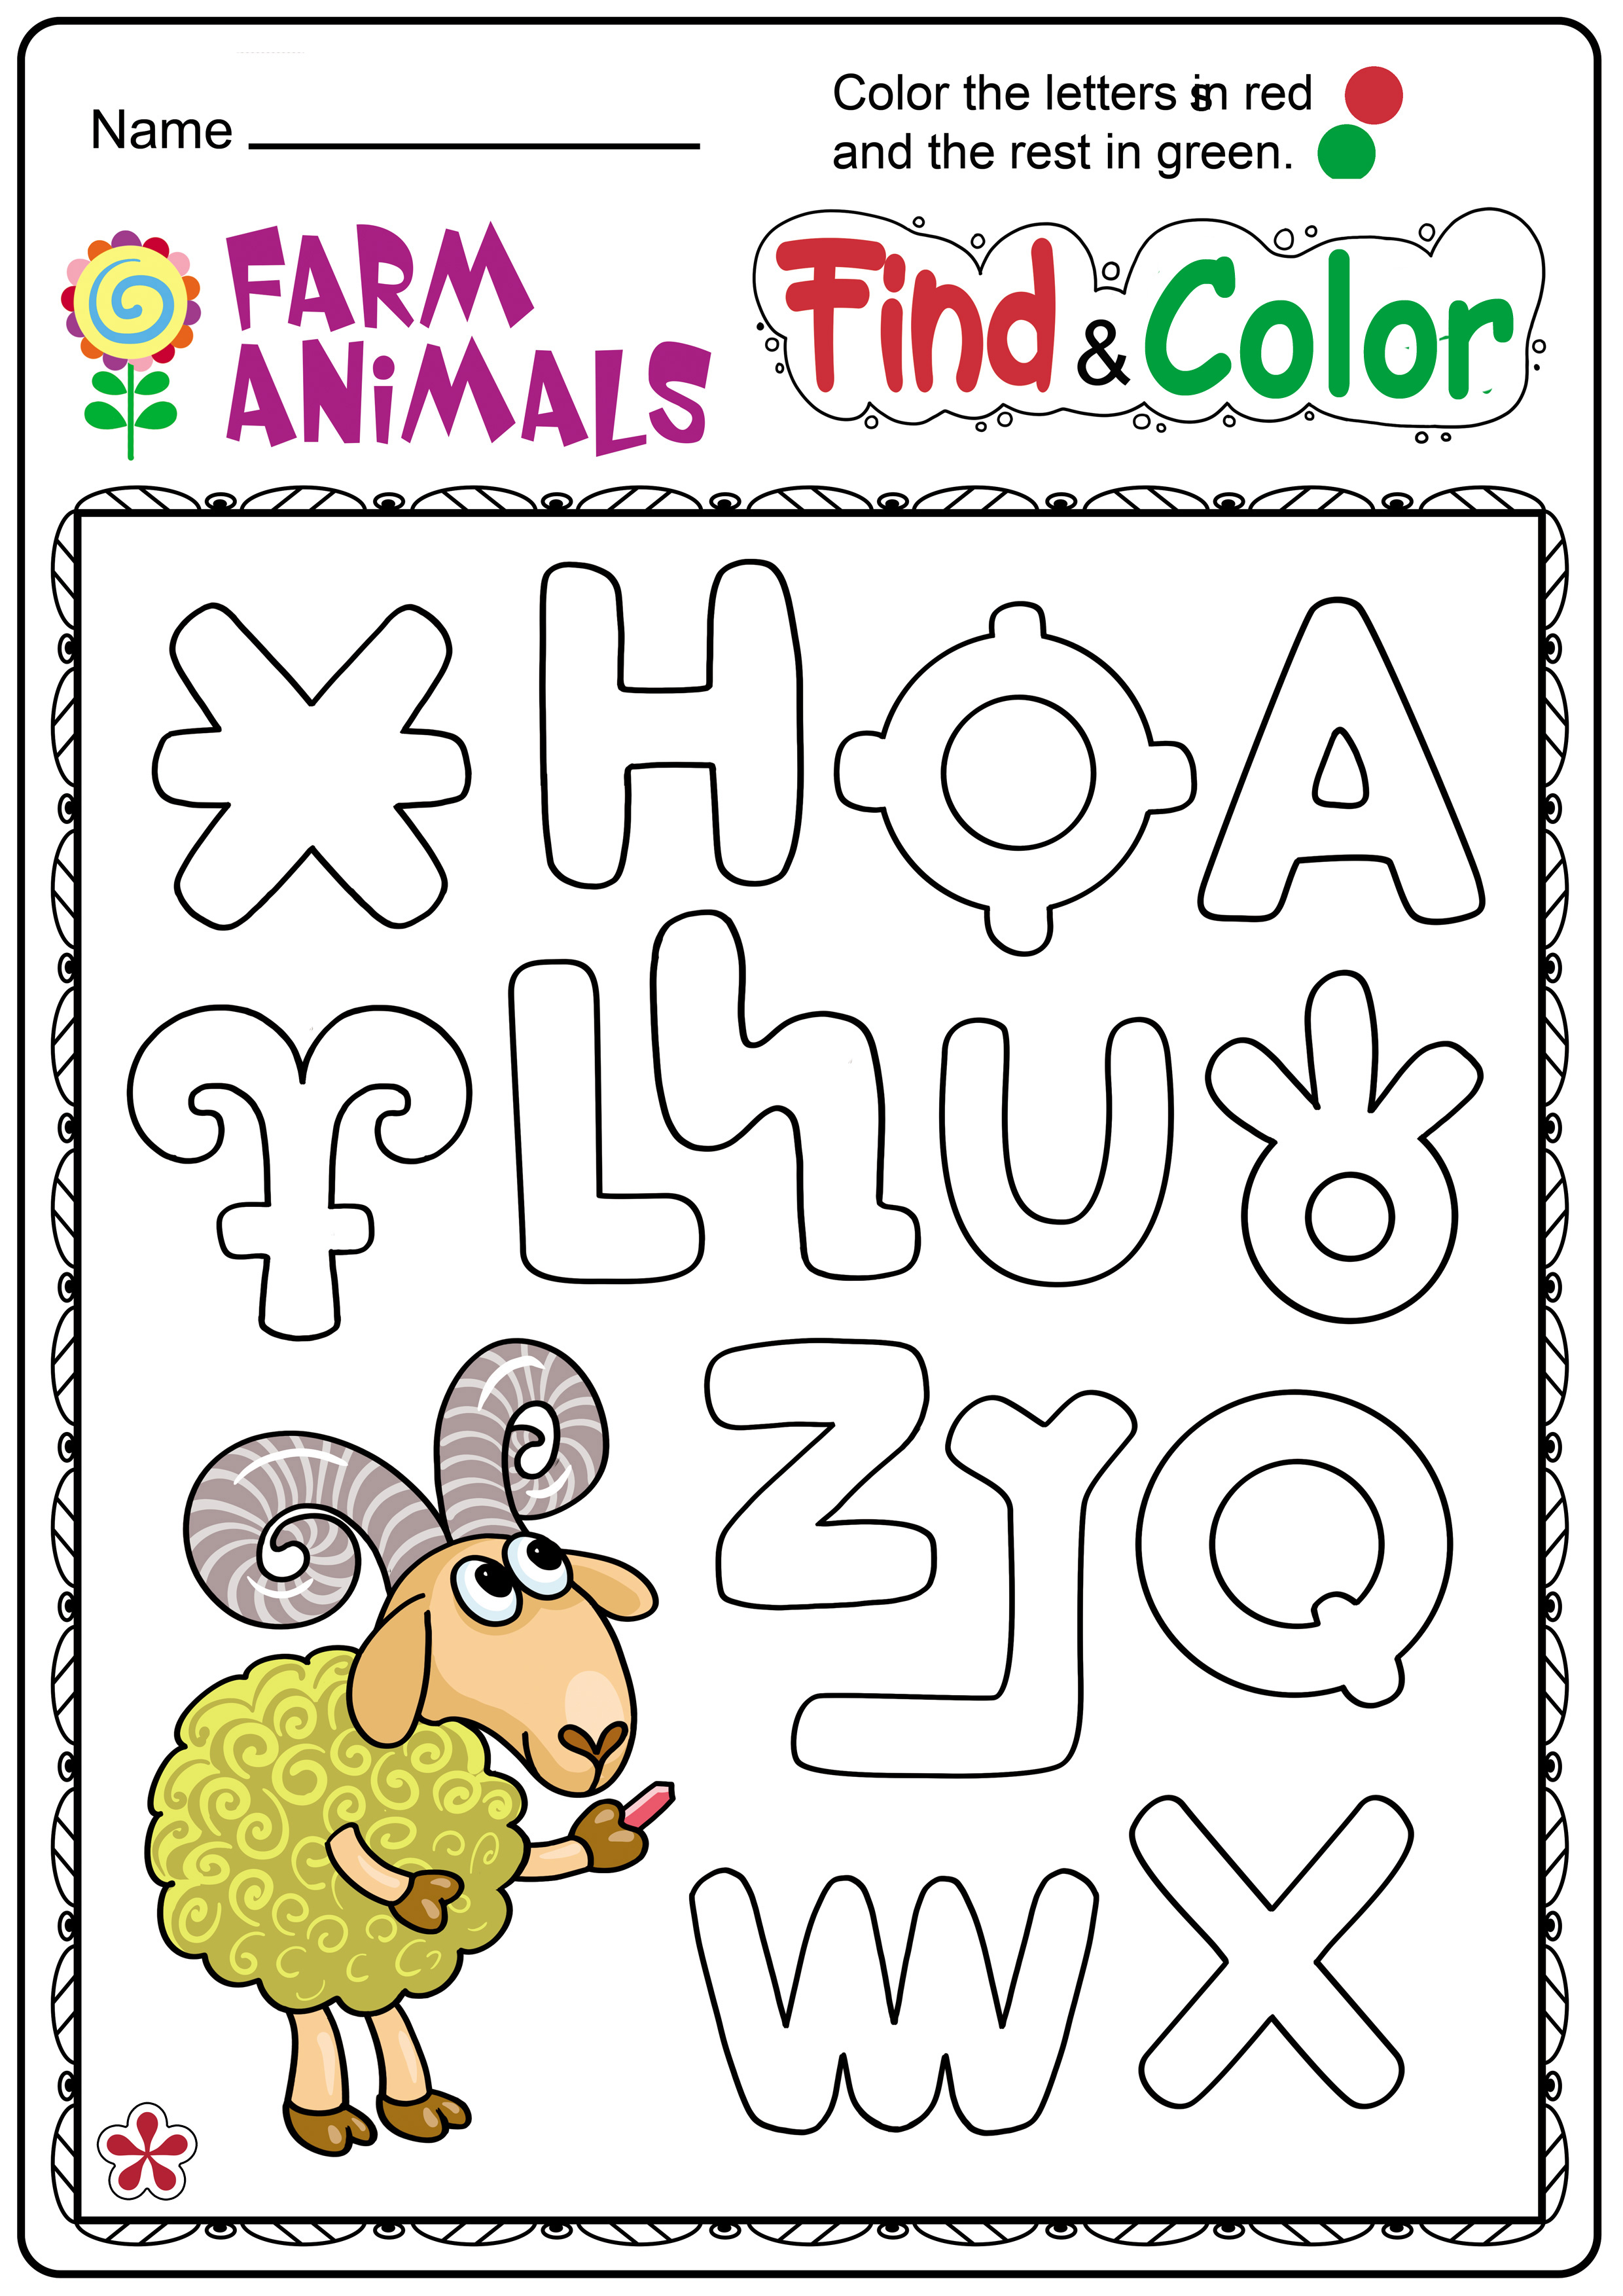 Worksheets On Farm Animals For Kindergarten